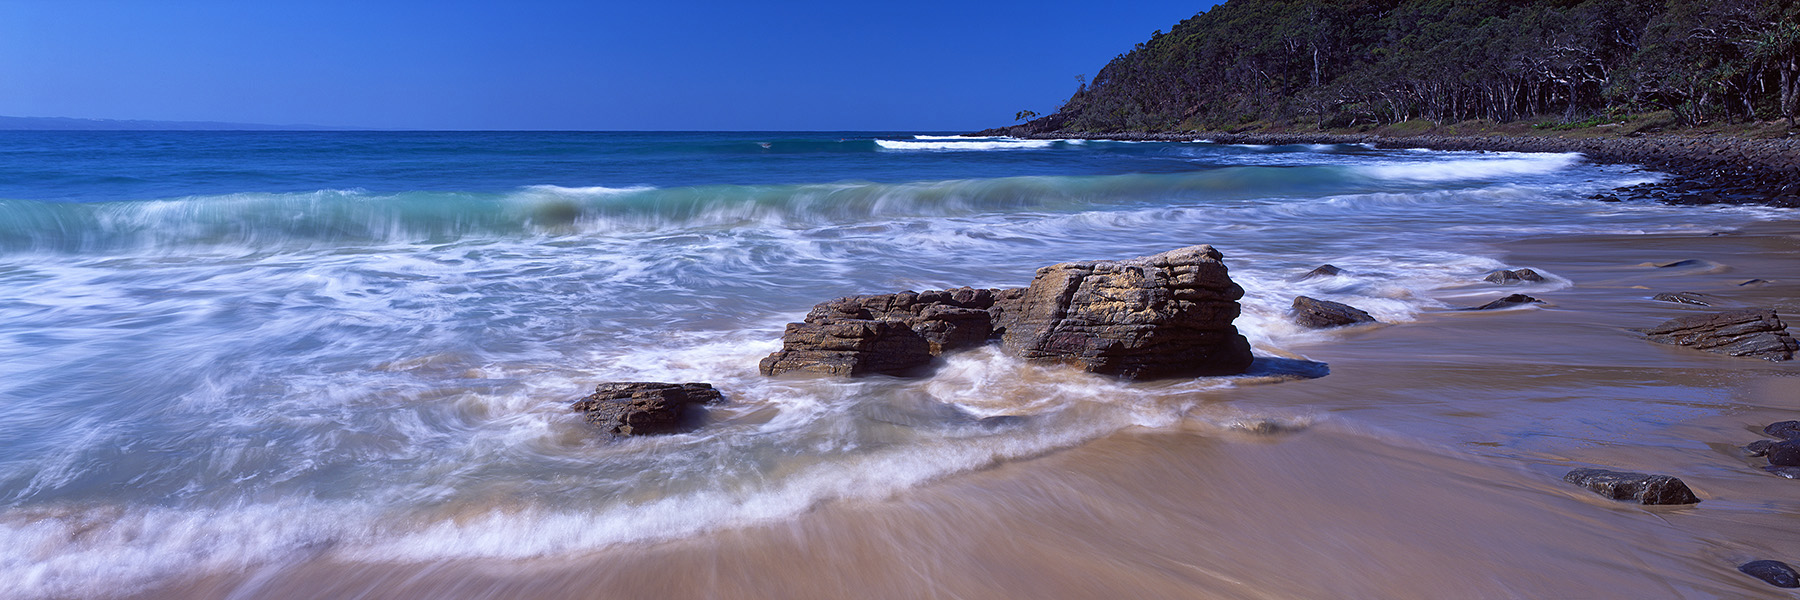 Noosa Rocks - Noosa National Park